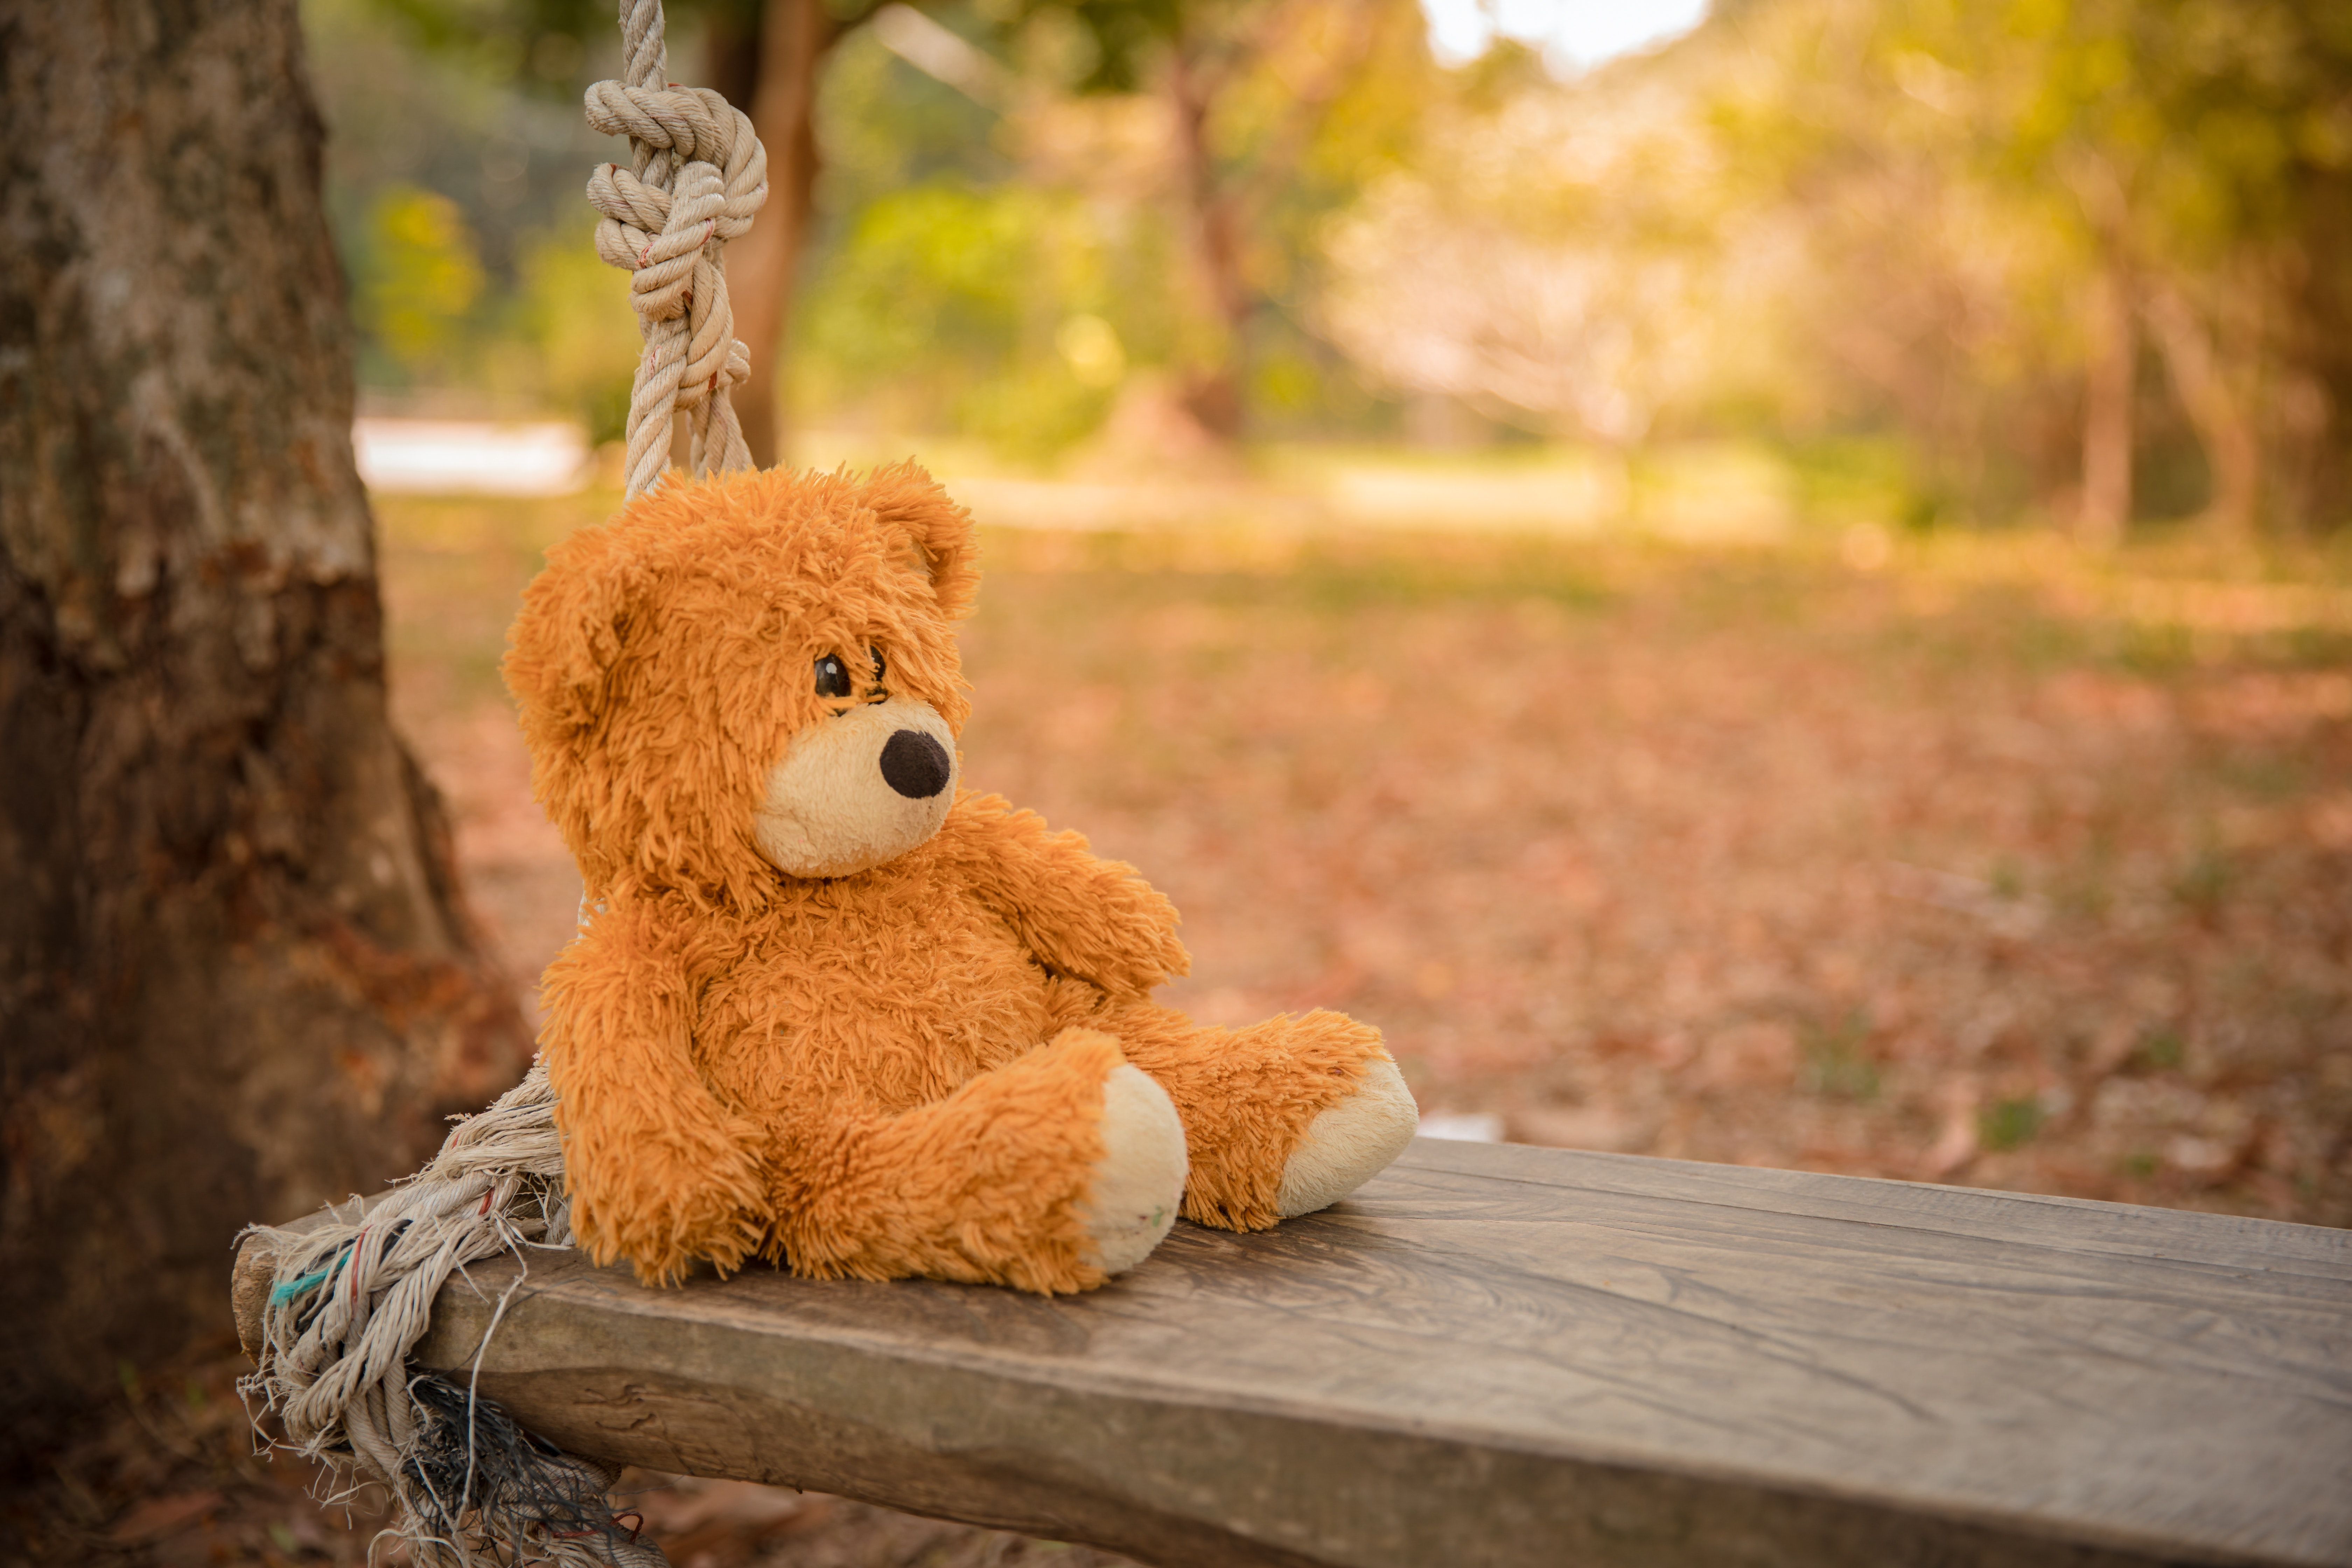 200 incredible bear pictures pexels free stock photos - Free teddy bear pics ...